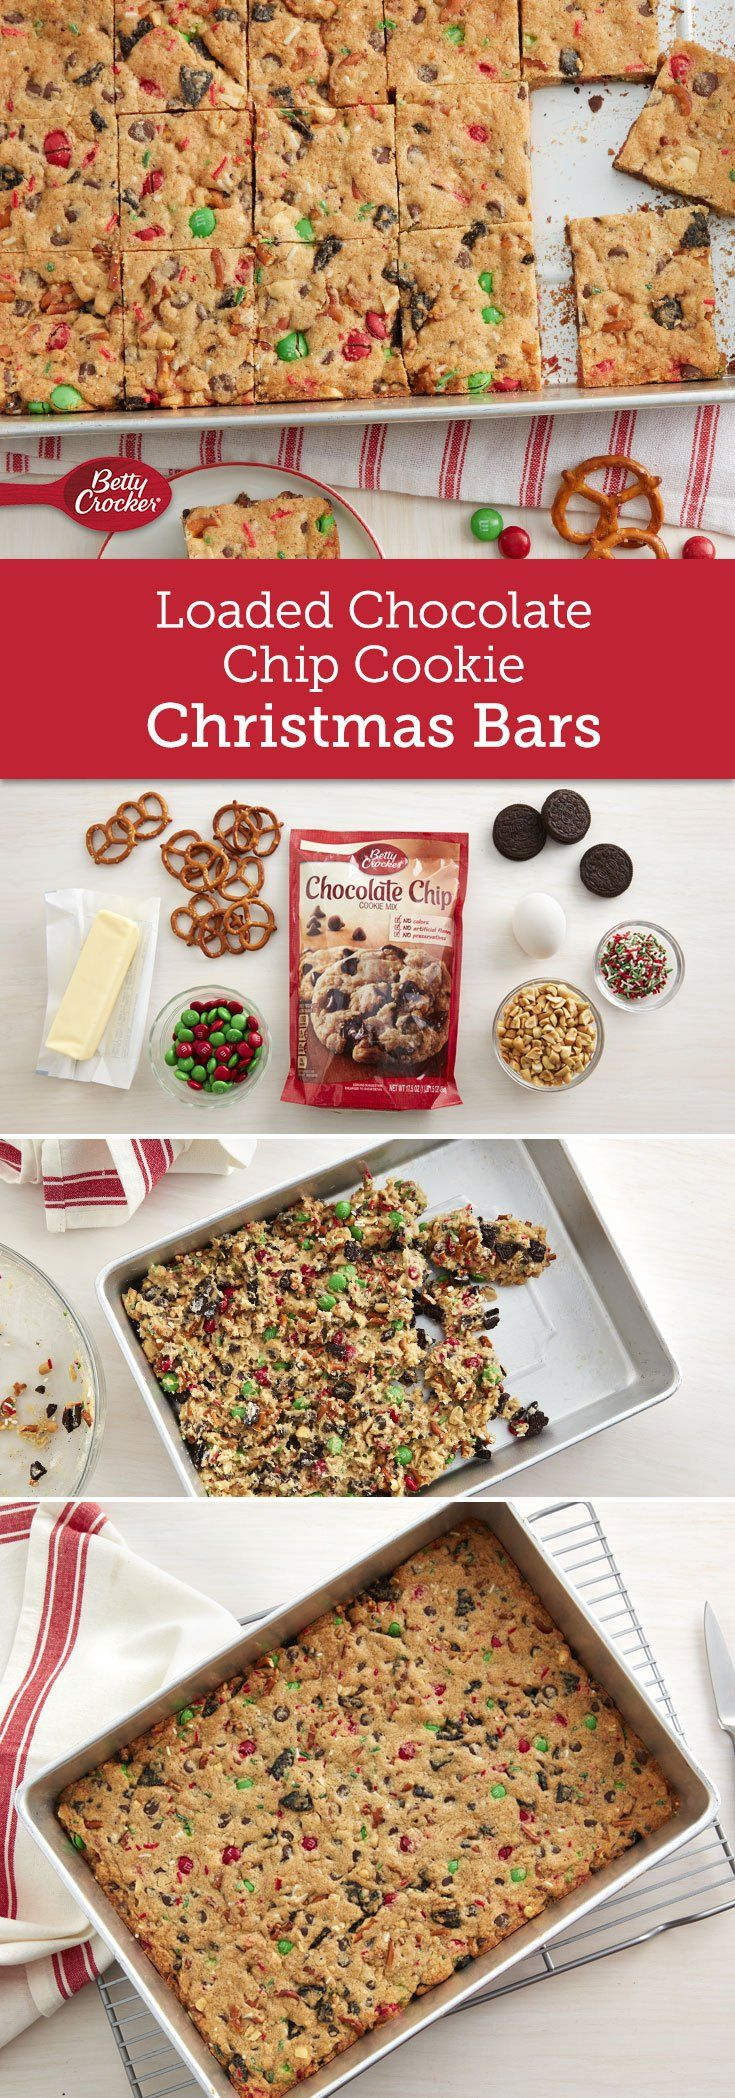 A sweet and salty holiday cookie bar that is loaded with lots of goodies! Loaded with Oreos™, pretzels, M&Ms™ and more, this recipe will be a major hit this holiday season!